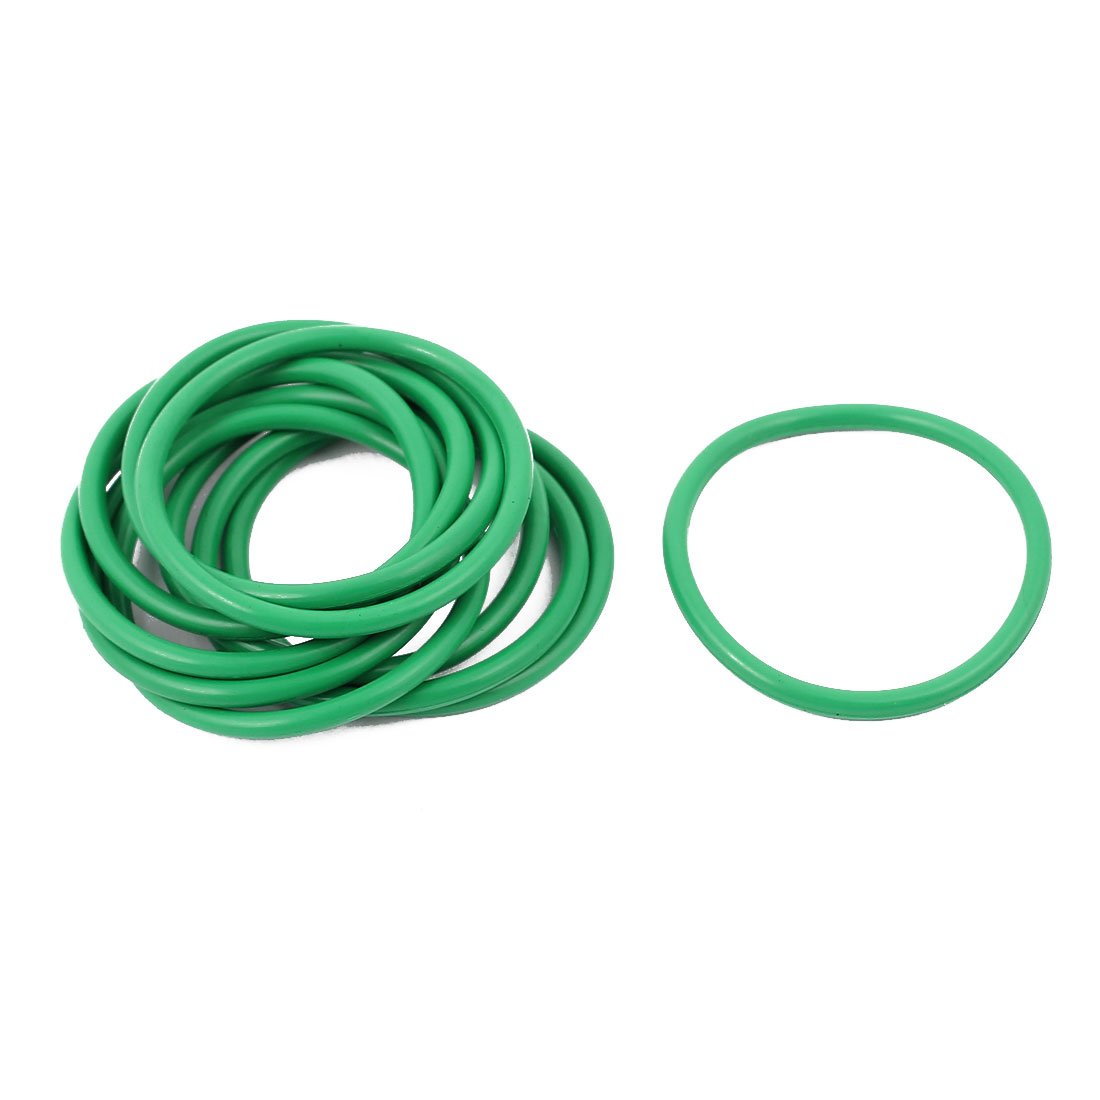 10pcs 1.9mm Thick Heat Resistant  Green O-Ring Rubber Sealing Ring 27mm OD